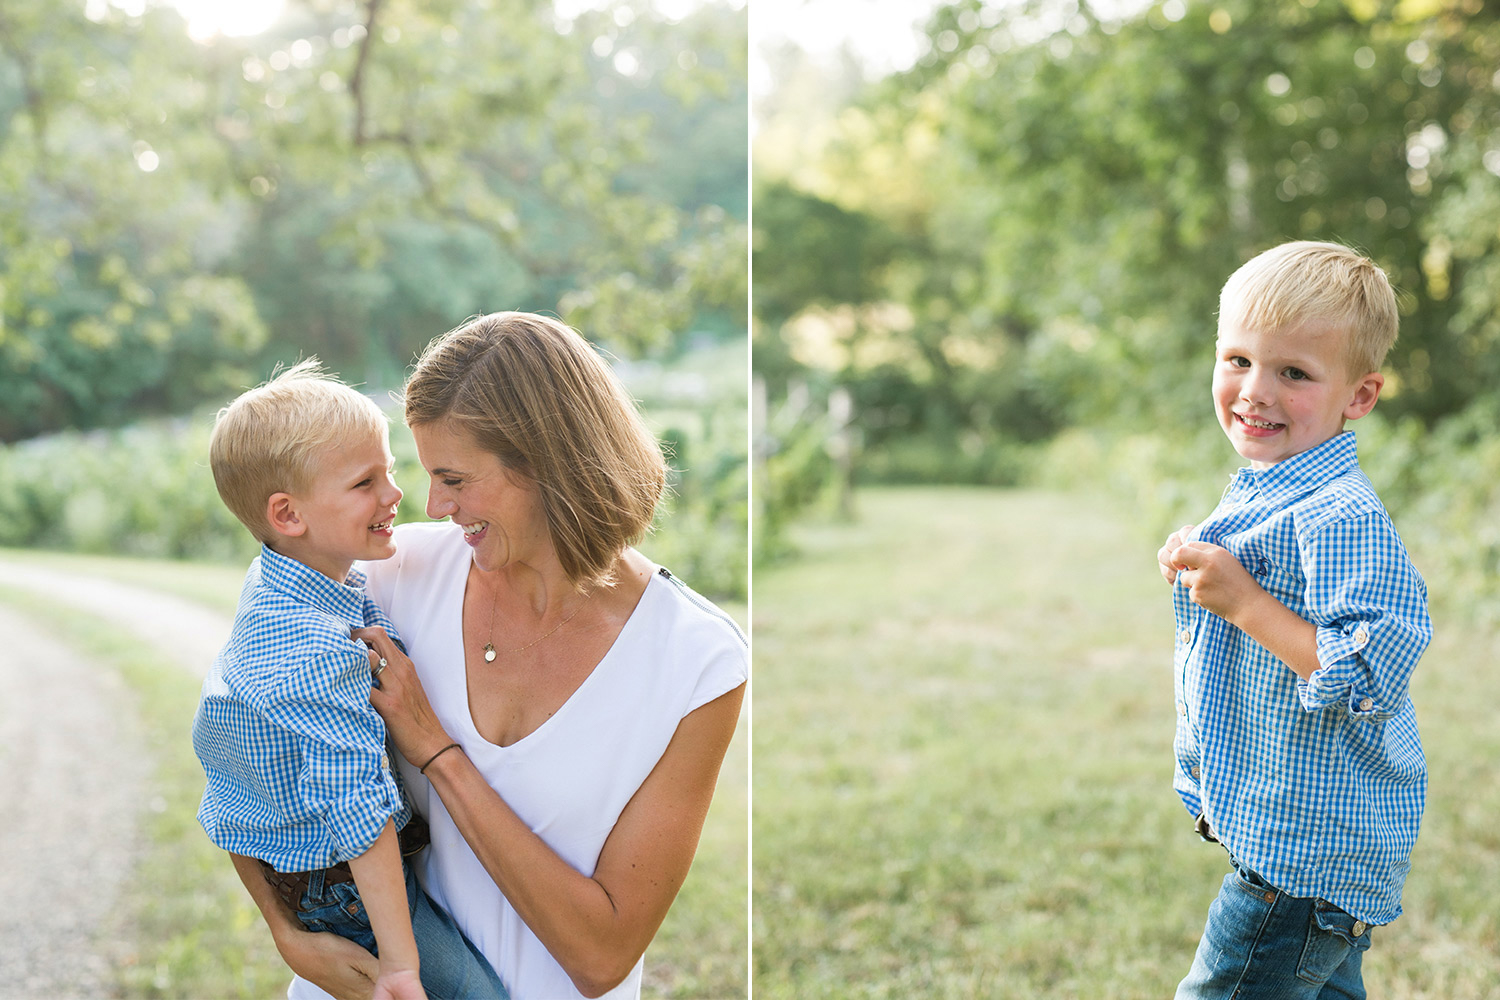 summer-orchard-family-photo-session-boston-7